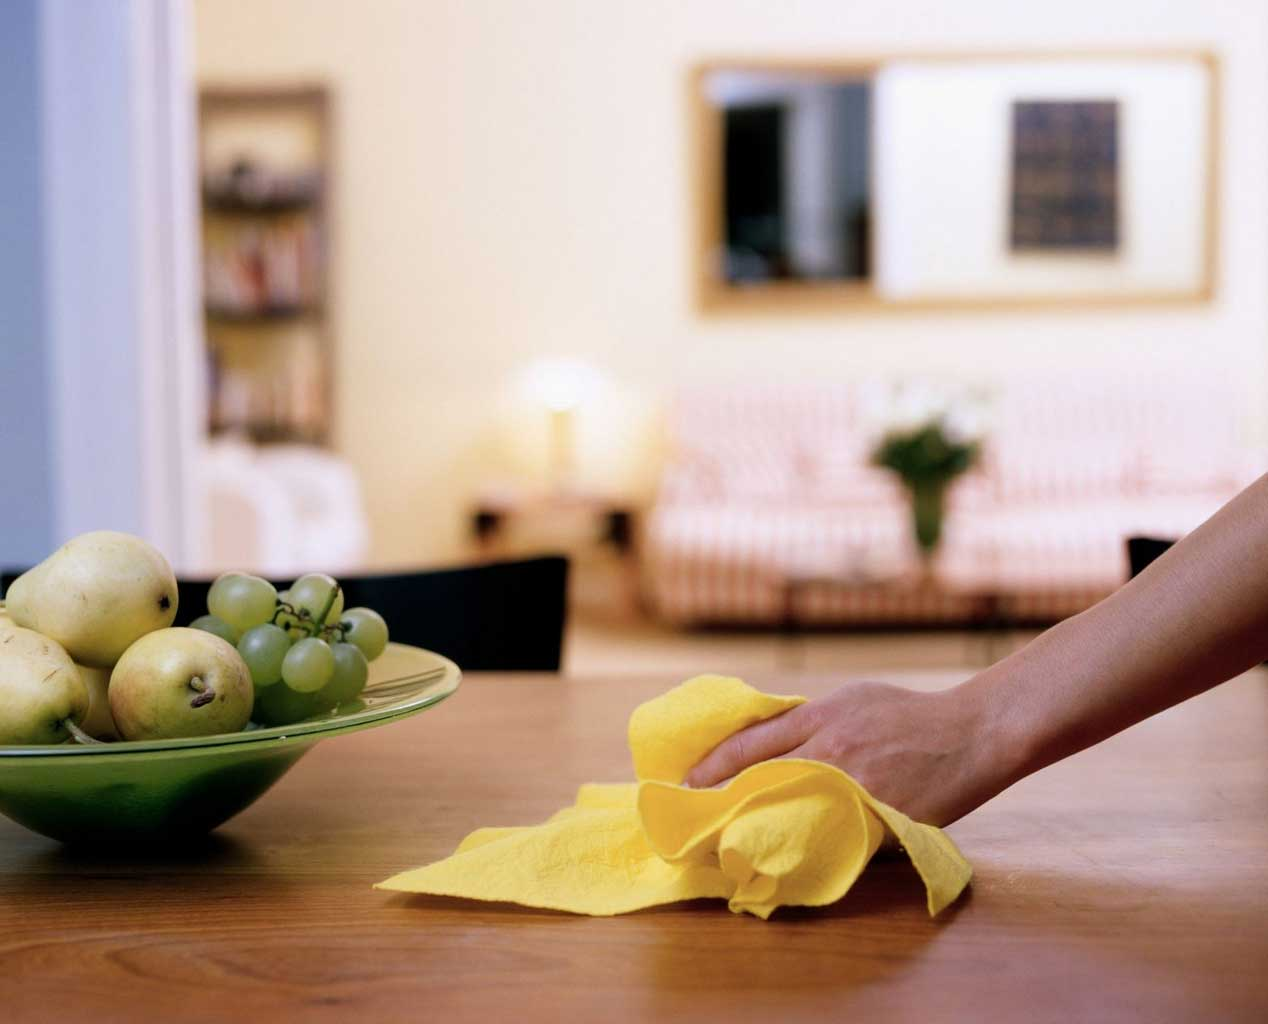 How To Cleaning Table And Vinyl Tablecloth From Stains | Table Covers Depot